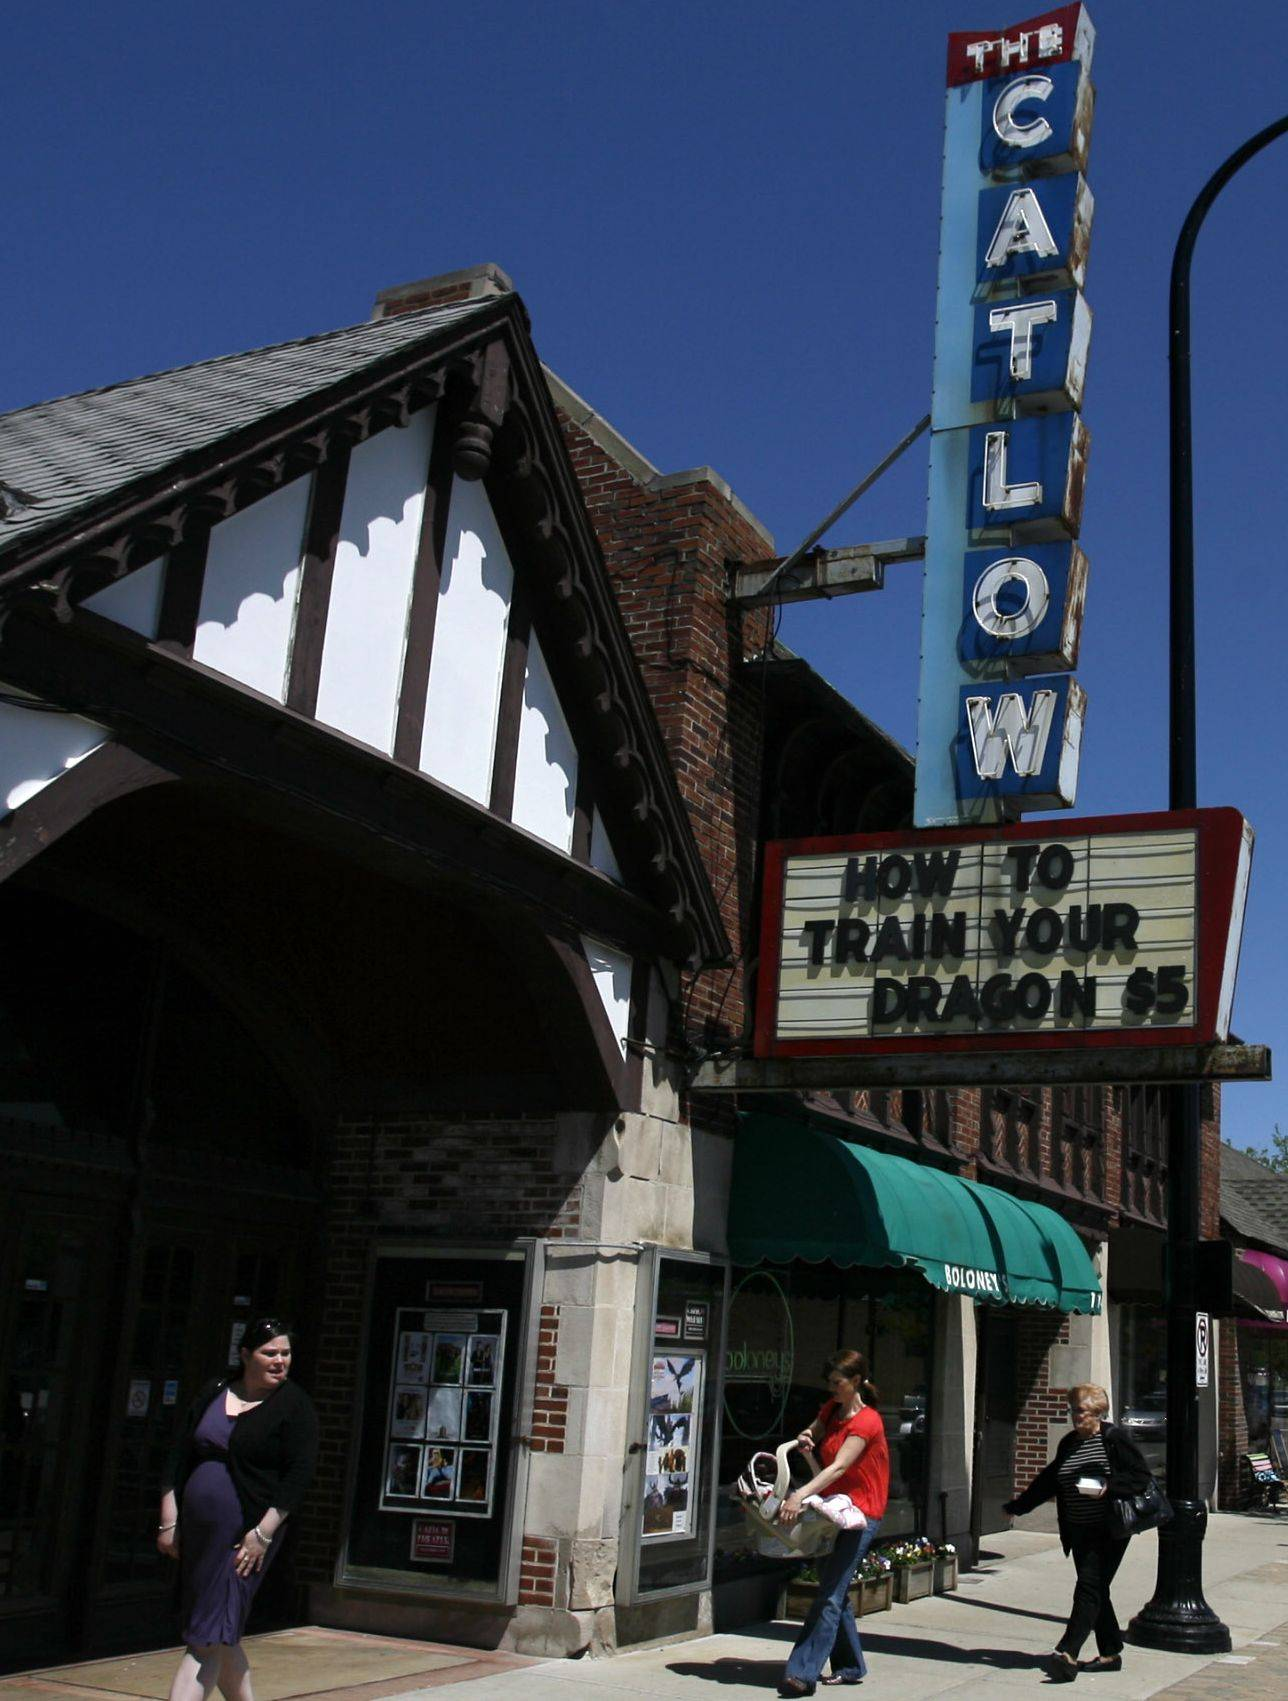 The Catlow Theater in Barrington is debating how to react to distributors' switch to all-digital formats.